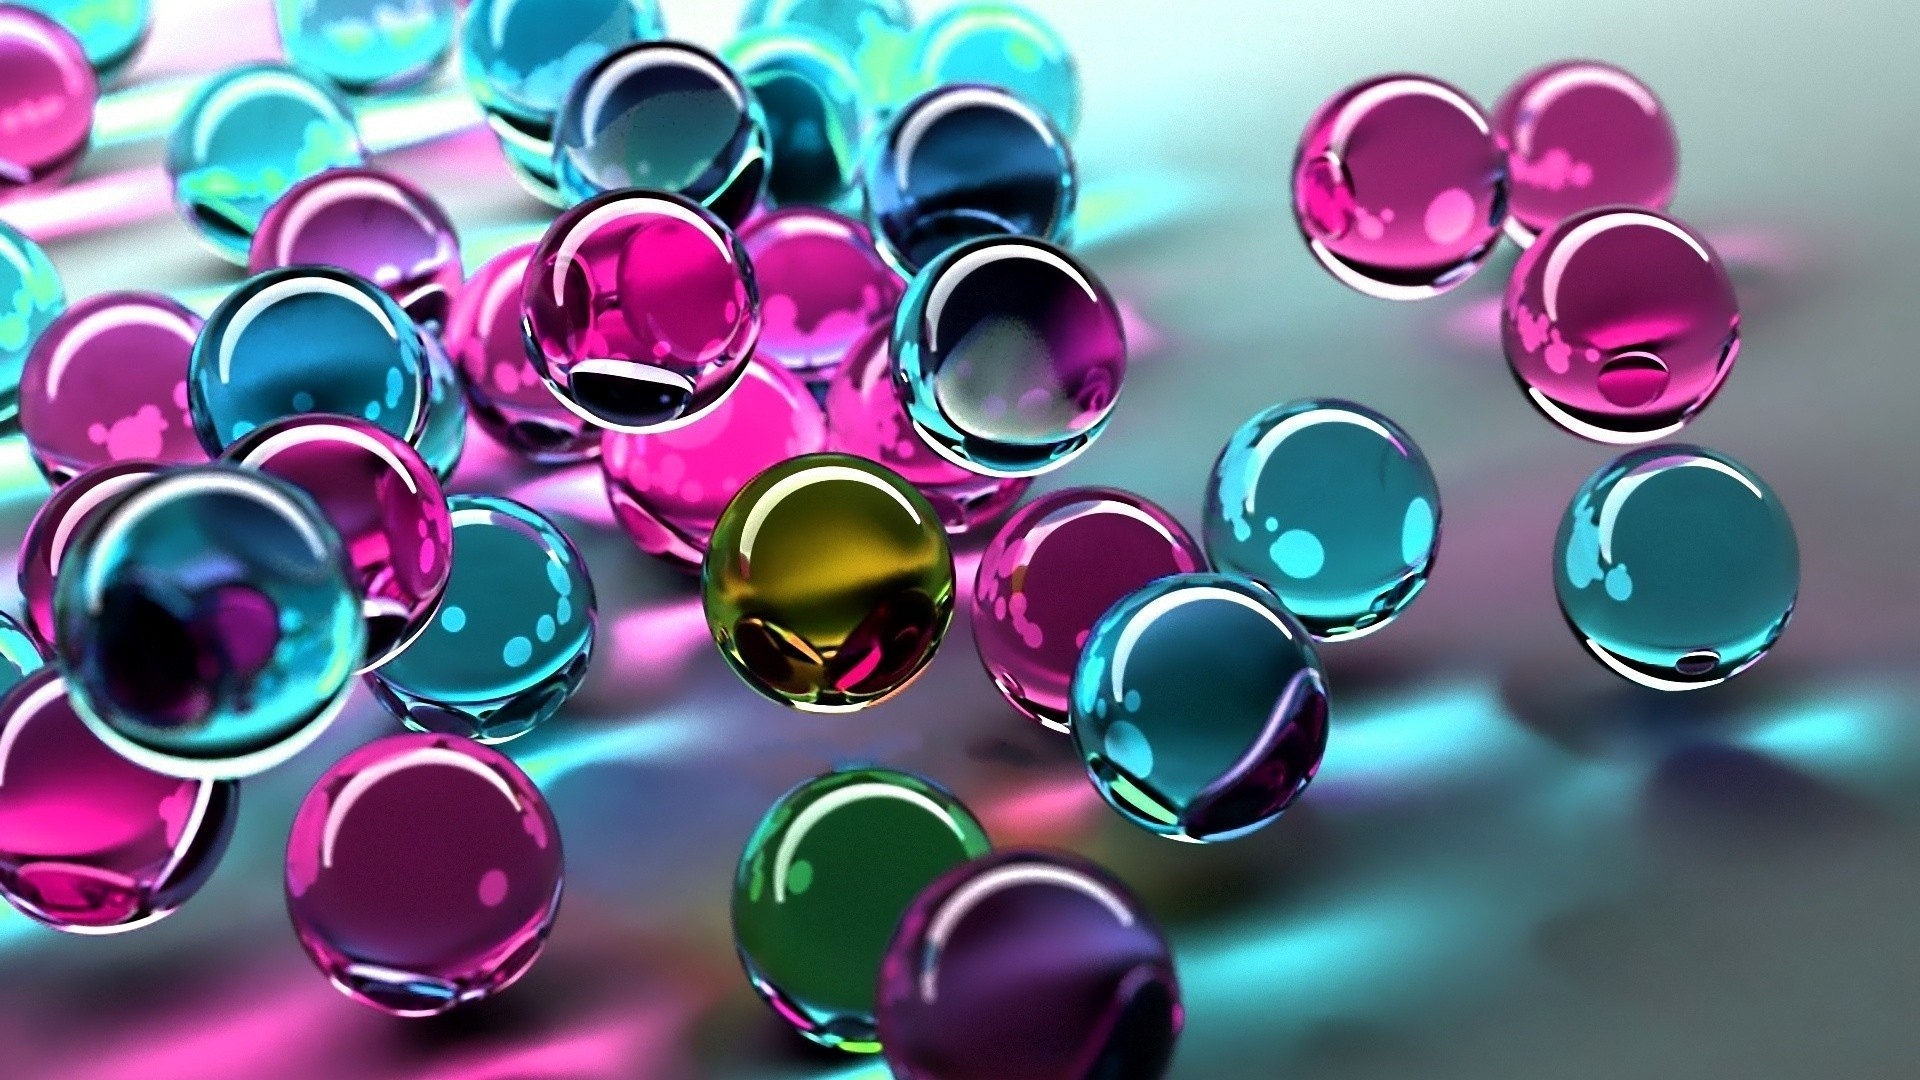 Abstract Spheres Digital Art Wallpaper